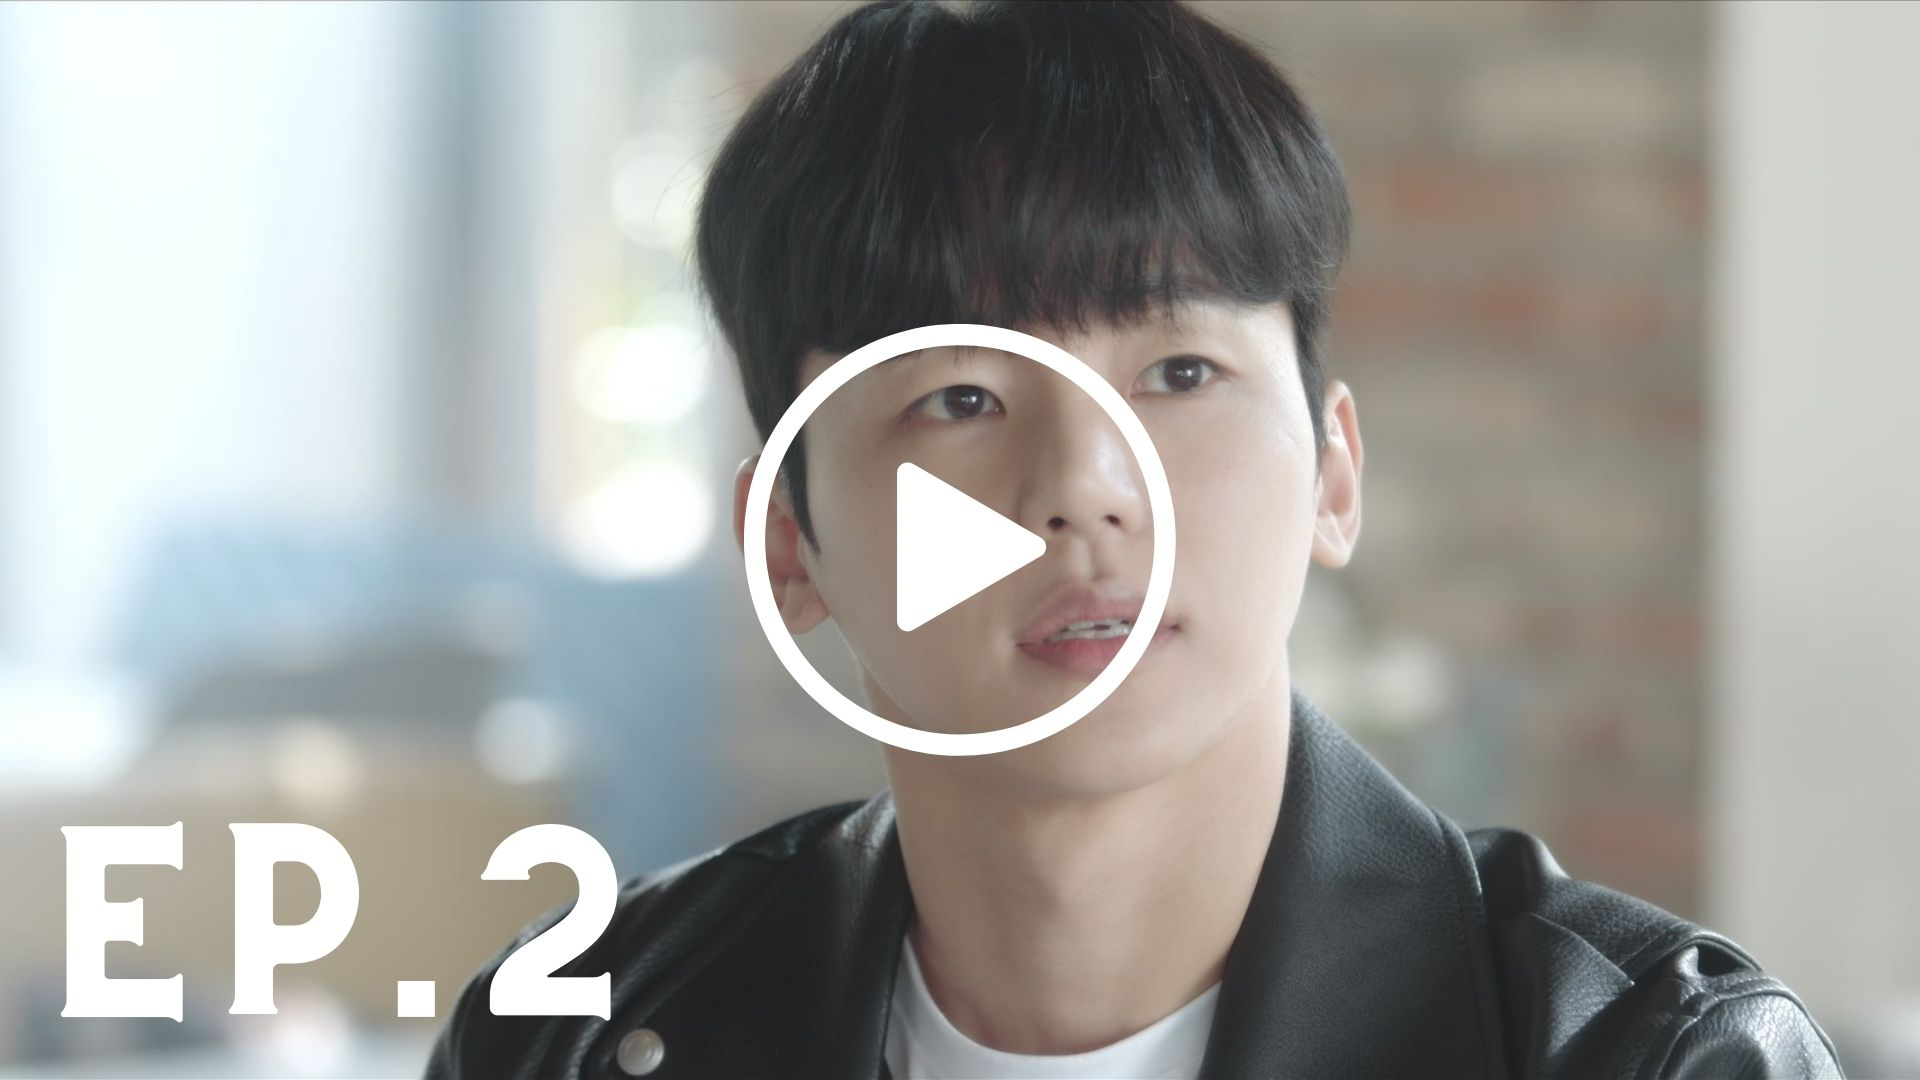 Wish You : Your Melody From My Heart: Episode 2